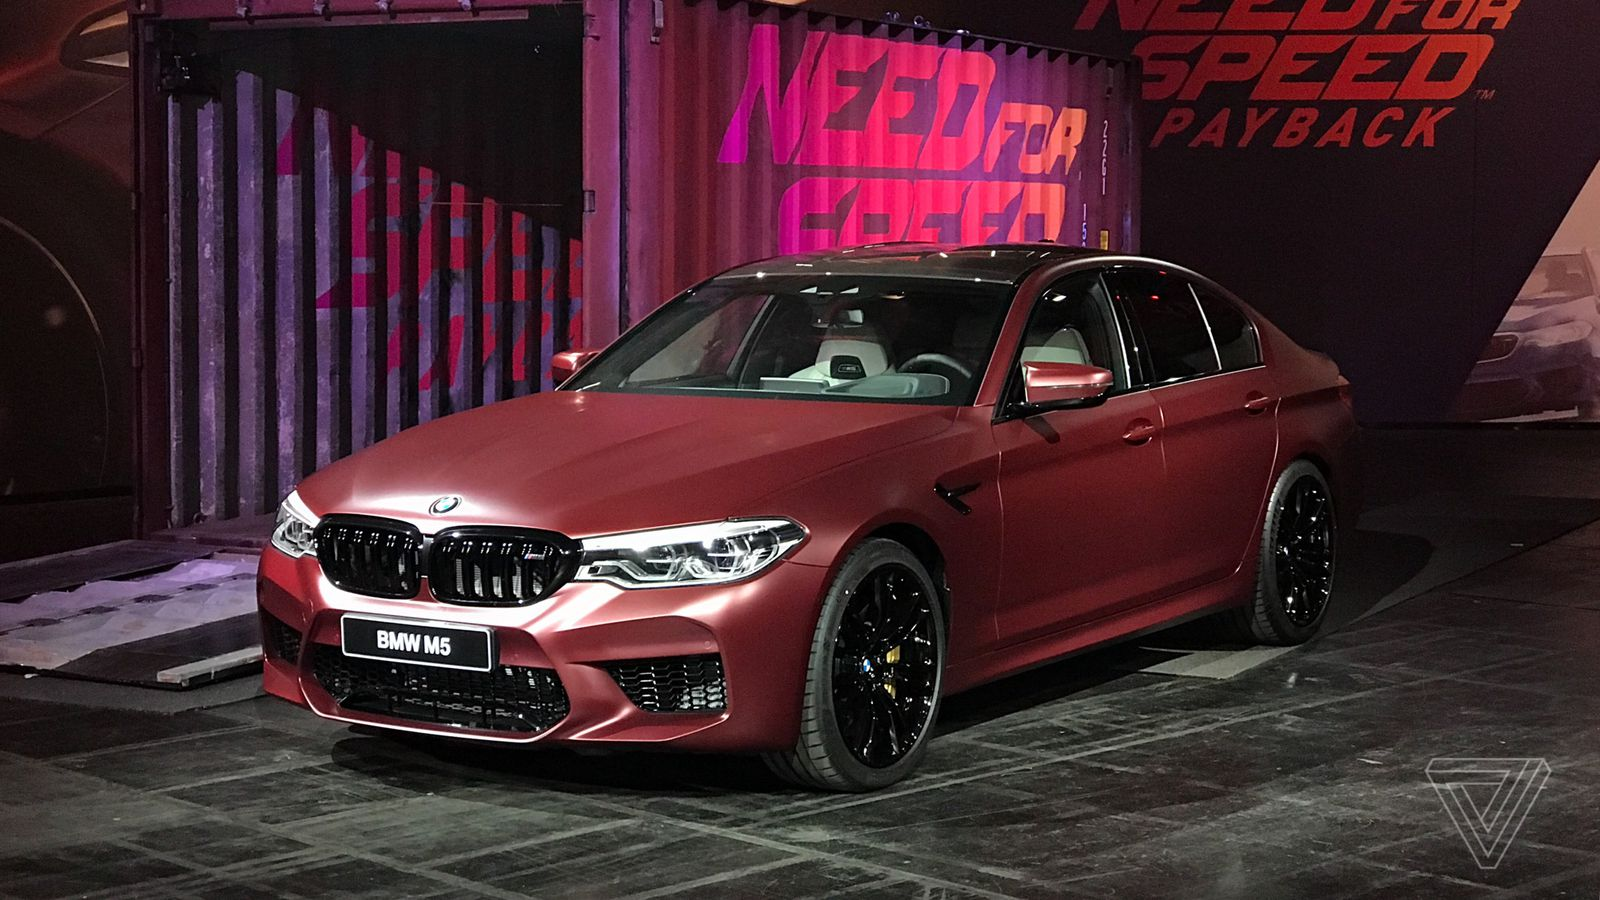 BMW shows off the new M5 in Need for Speed Payback - The Verge